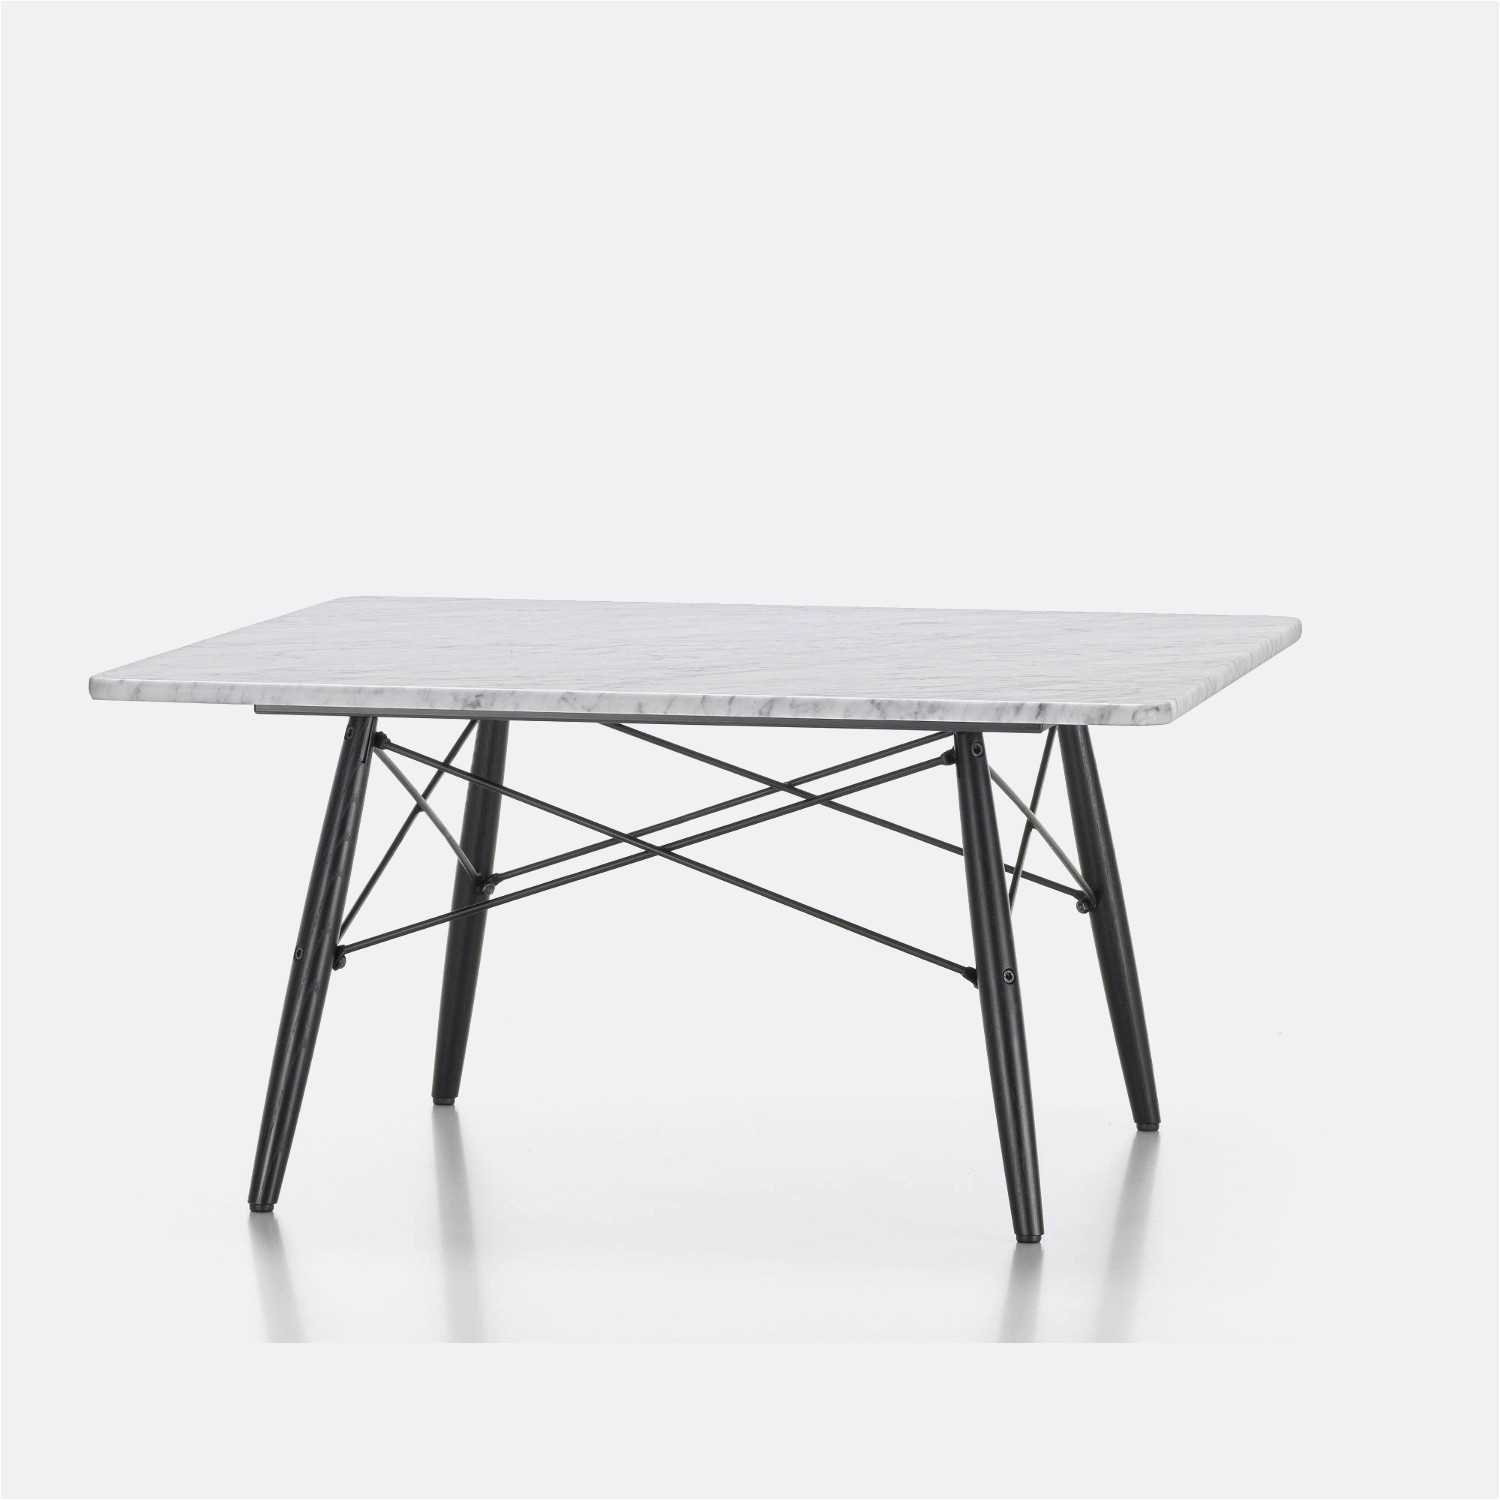 Table Basse Carrée Design Table Basse Carrée Verre Design Tendancesdesign Fr